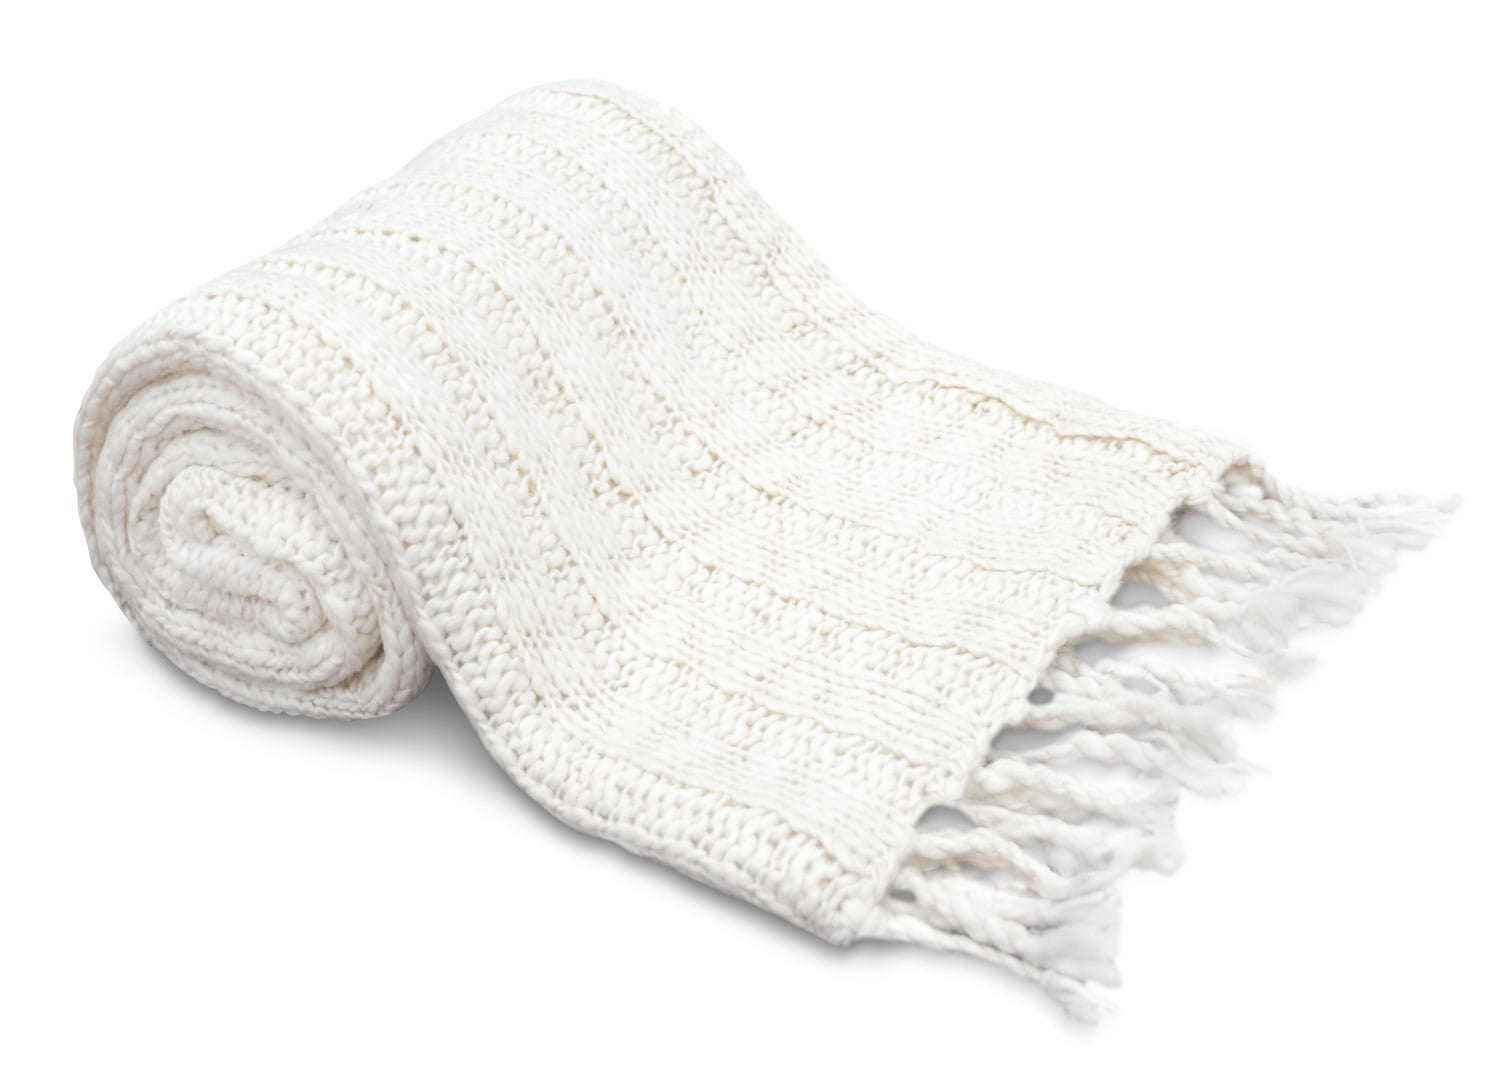 Mattresses and Bedding - Knit Throw with Tassels – White